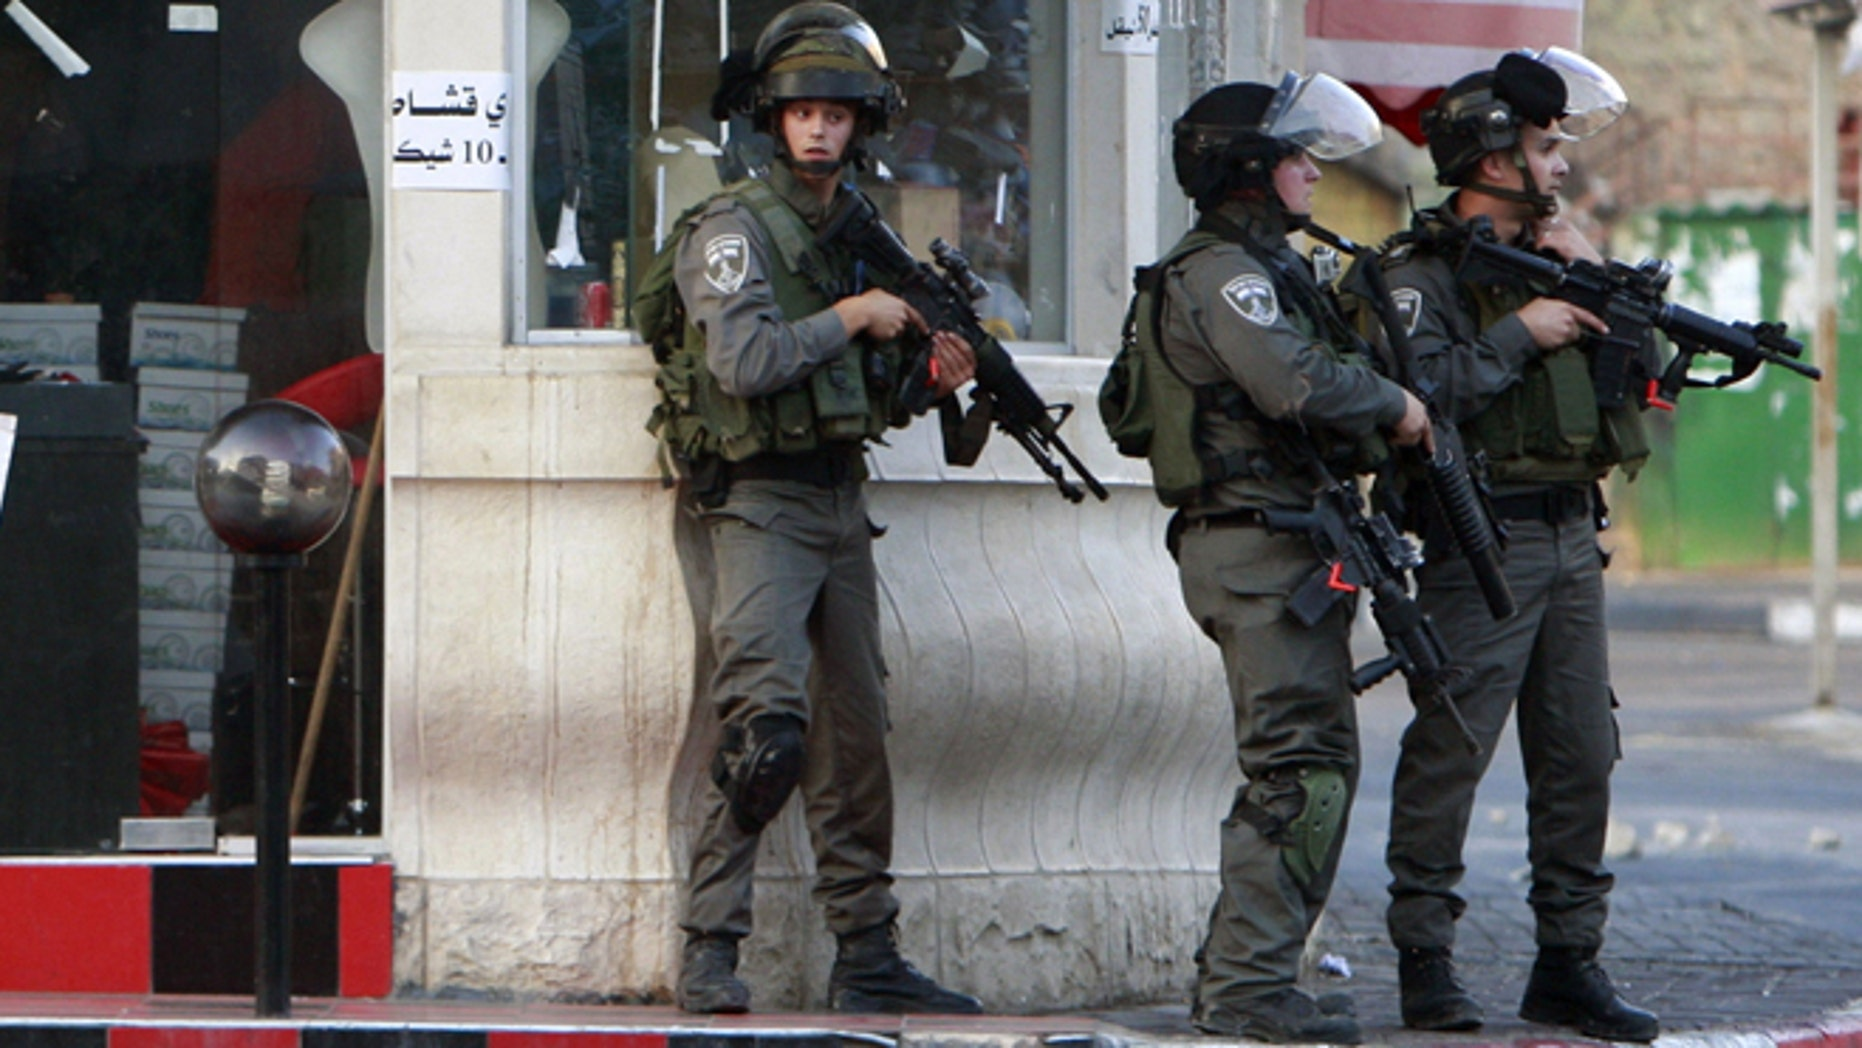 June 19, 2014: Israeli soldiers search for three missing Israeli teens believed to have been abducted in the West Bank city of Jenin. Since the operation to locate the teens began a week ago, about 280 Palestinians have been arrested, the military said, including 200 members of Hamas.